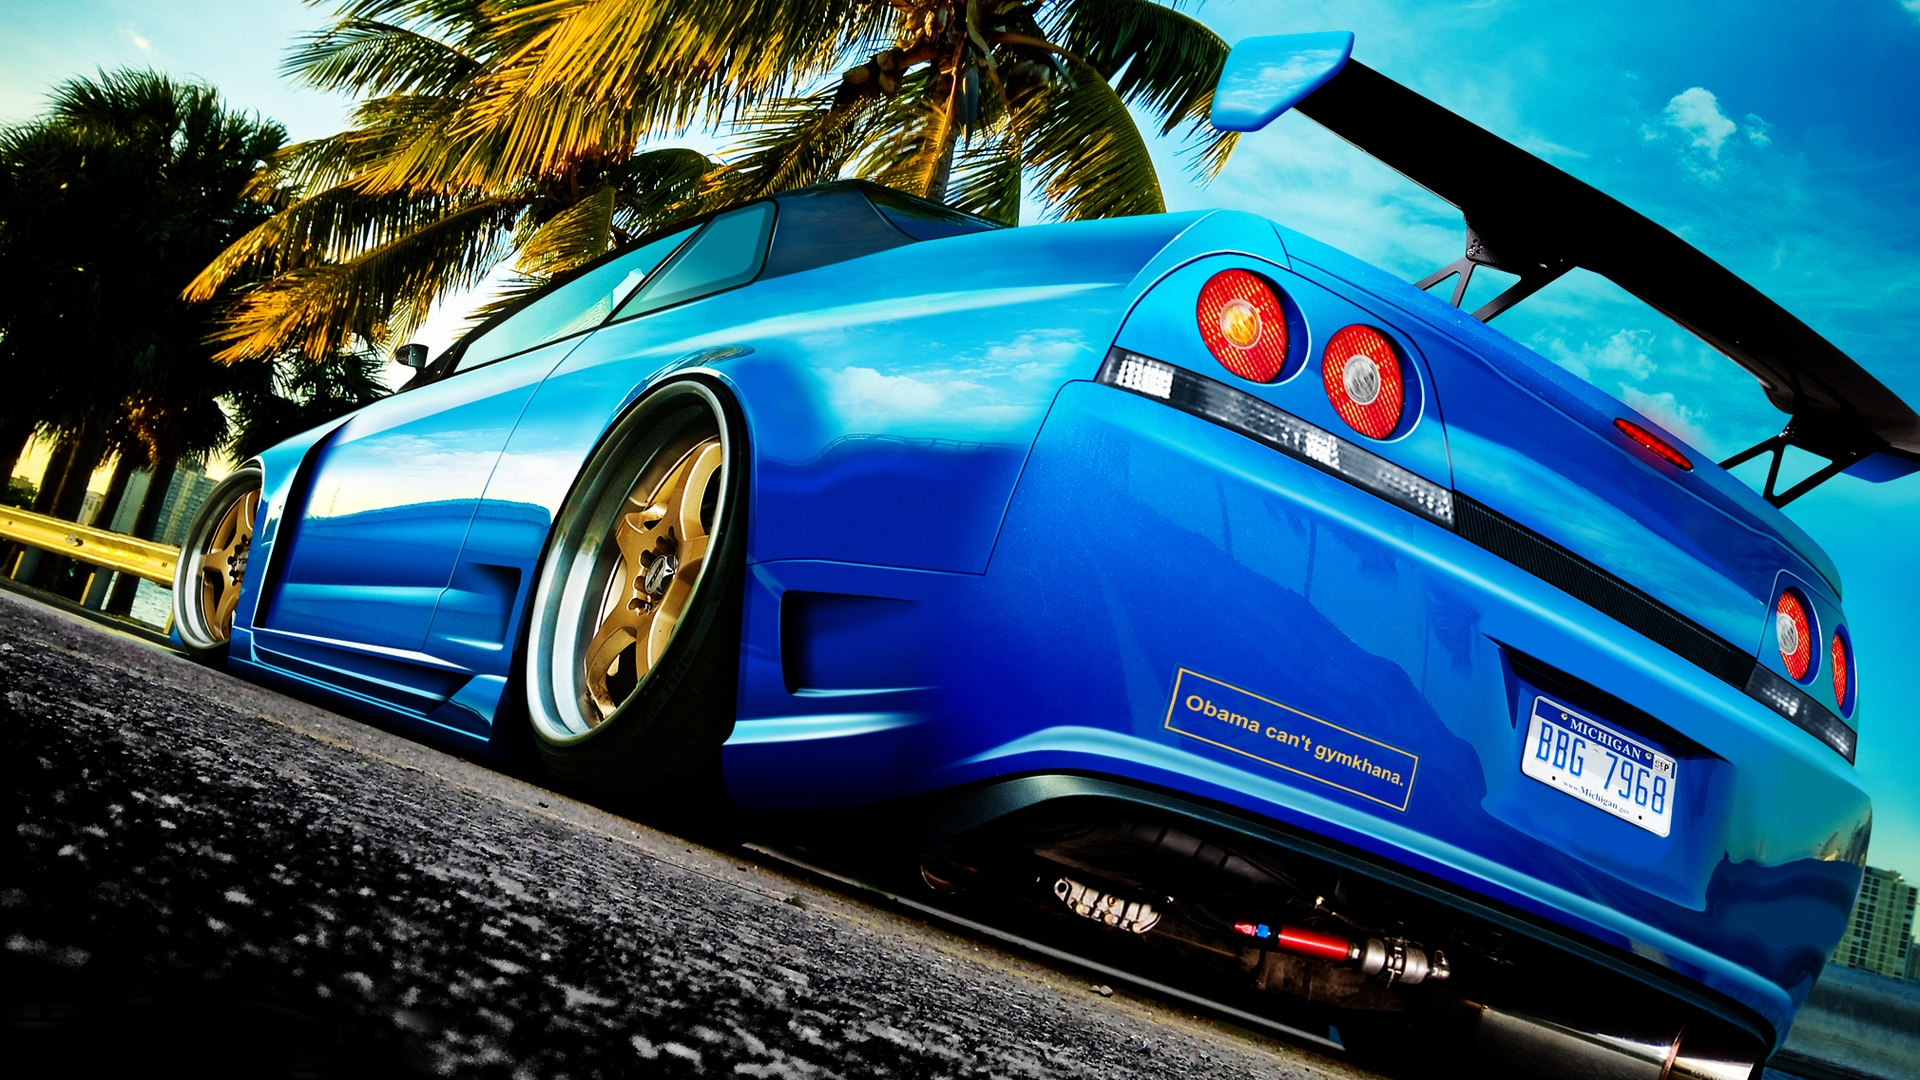 Download Skyline Wallpaper Car Wallpapers